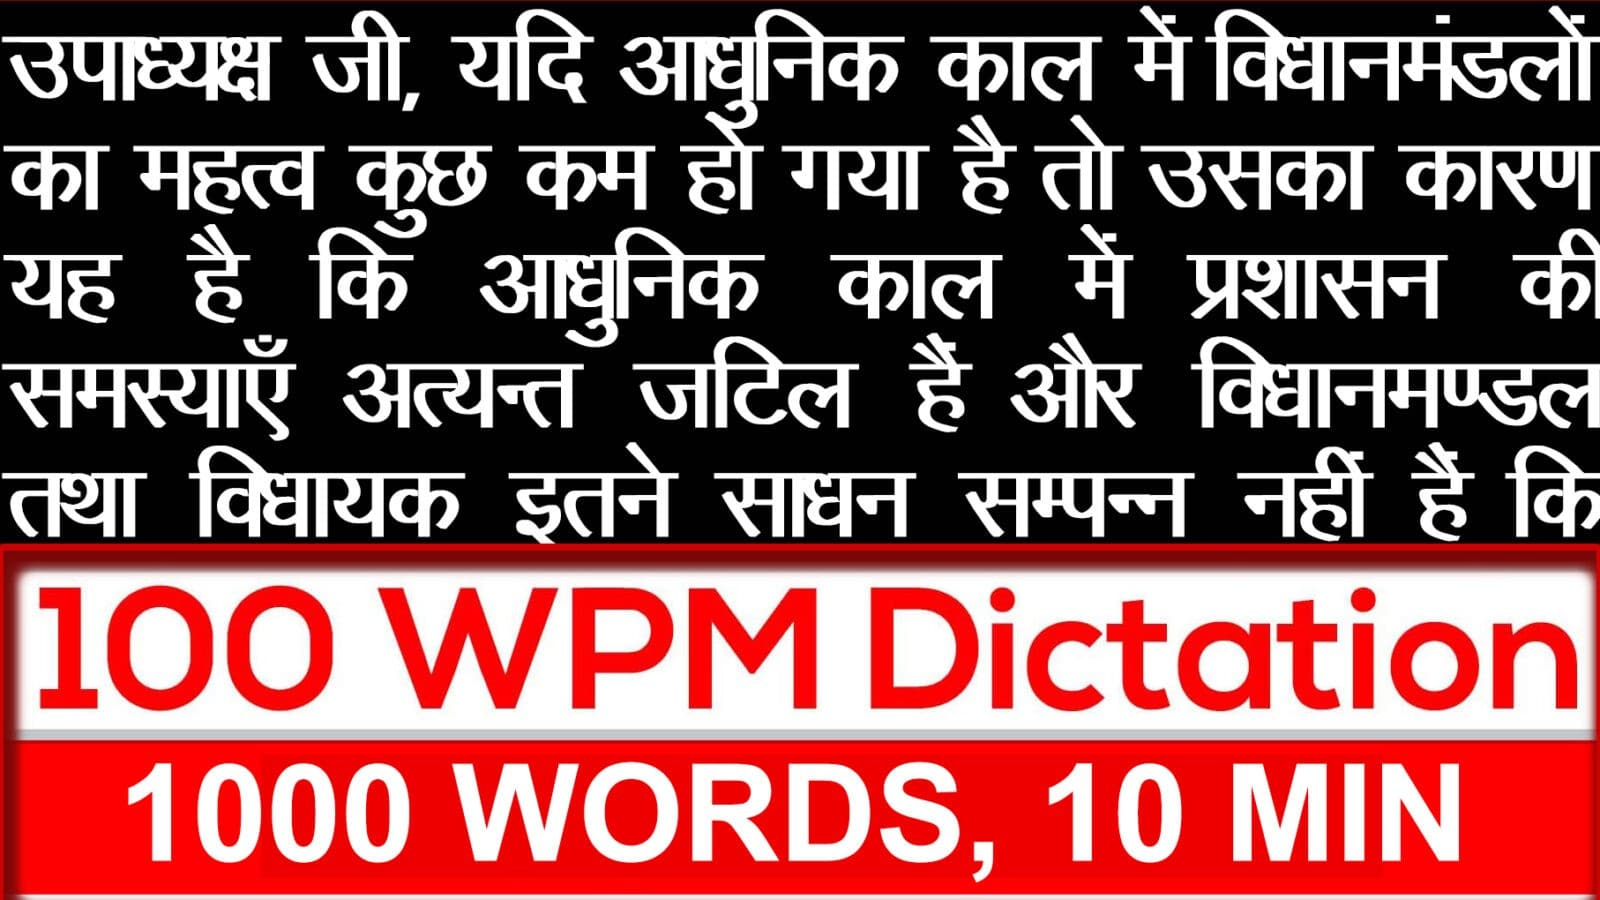 100 WPM 10 Min 1000 words dictation